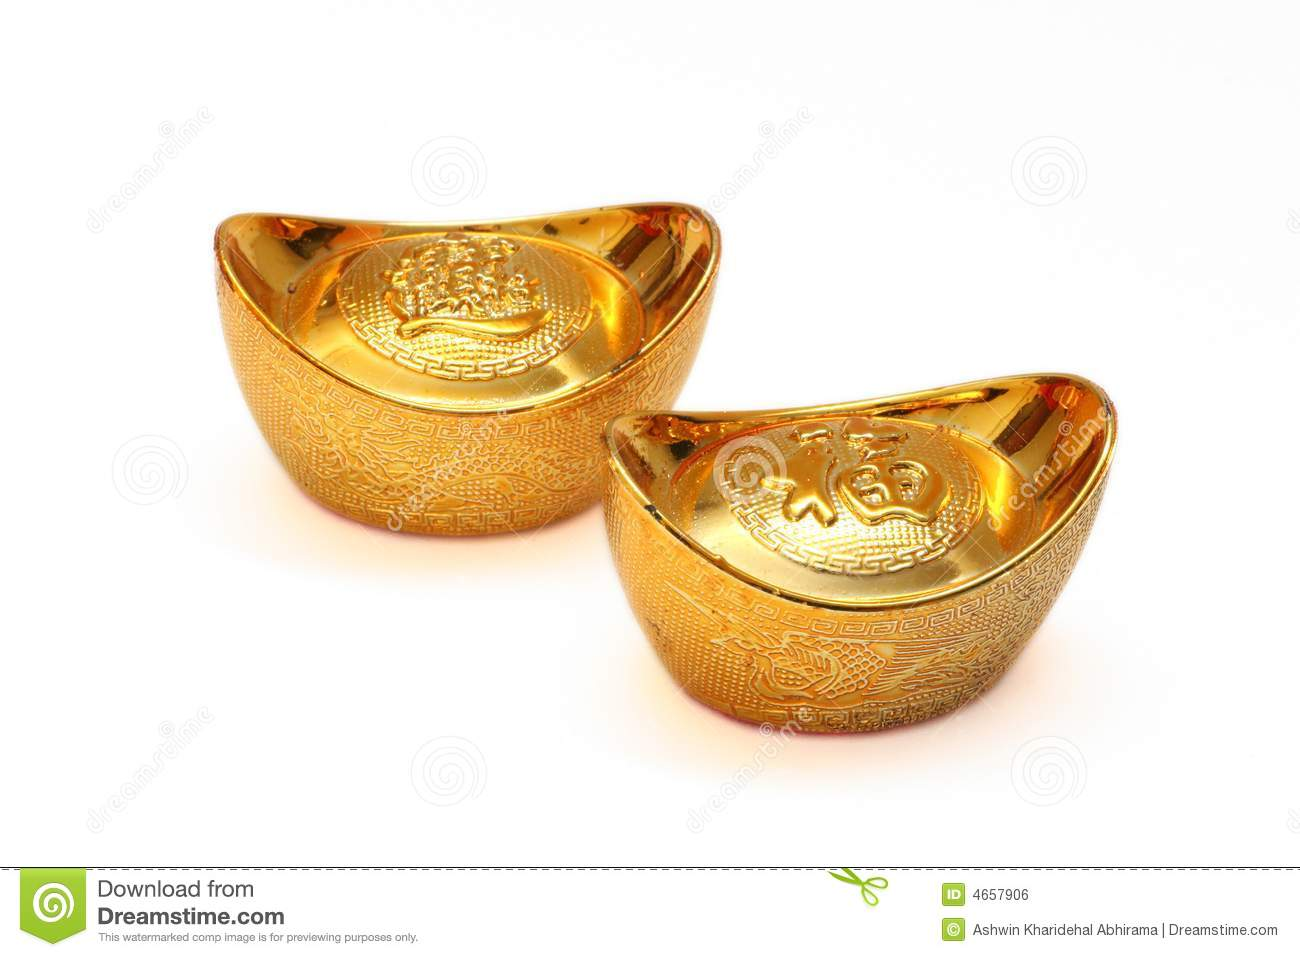 Chinese gold ingots stock photo  Image of decoration, rich